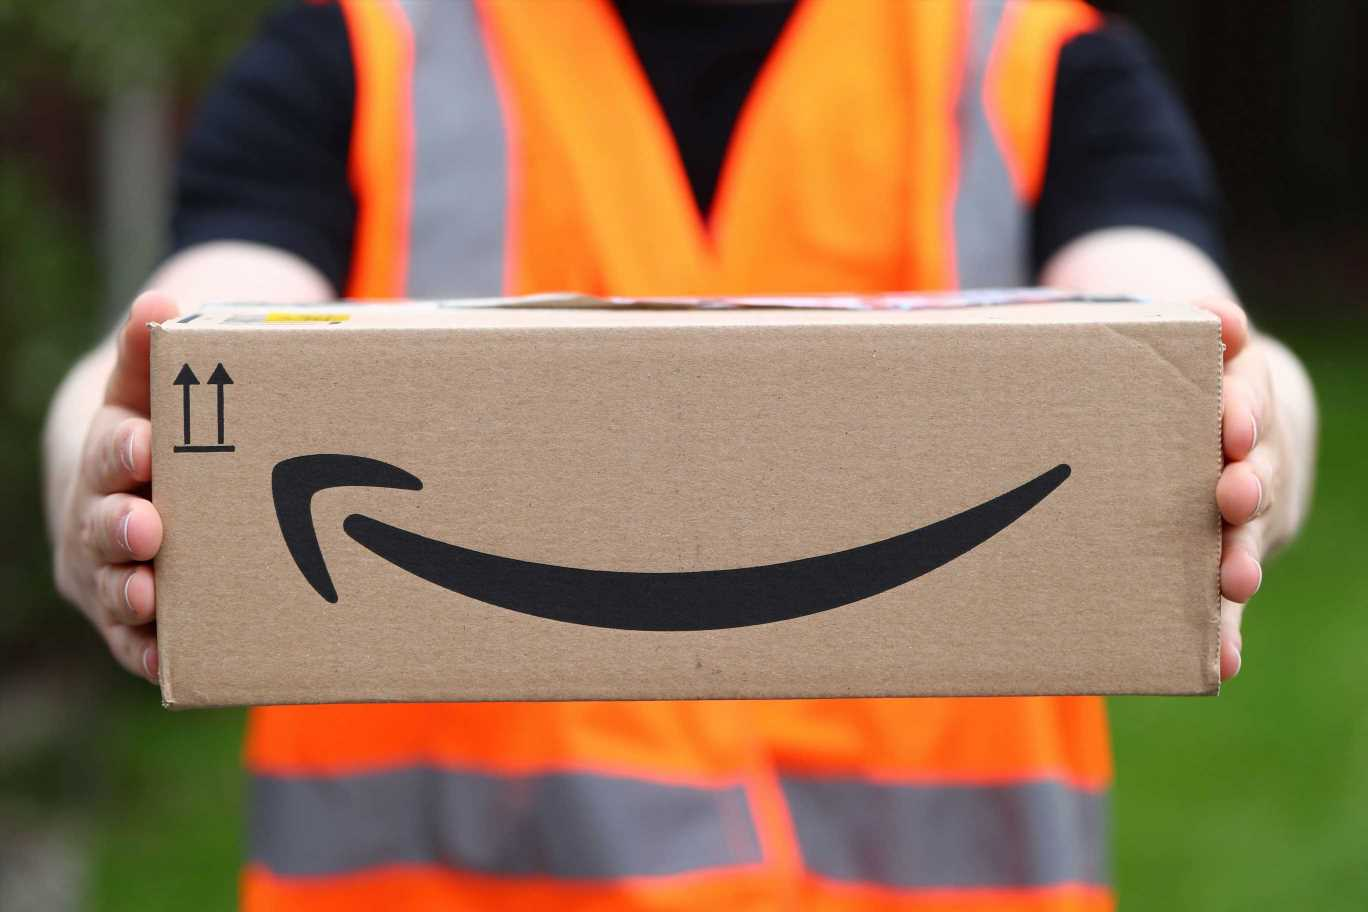 Amazon Prime Day: Fraudsters create thousands of fake websites to scam shoppers – how to spot one